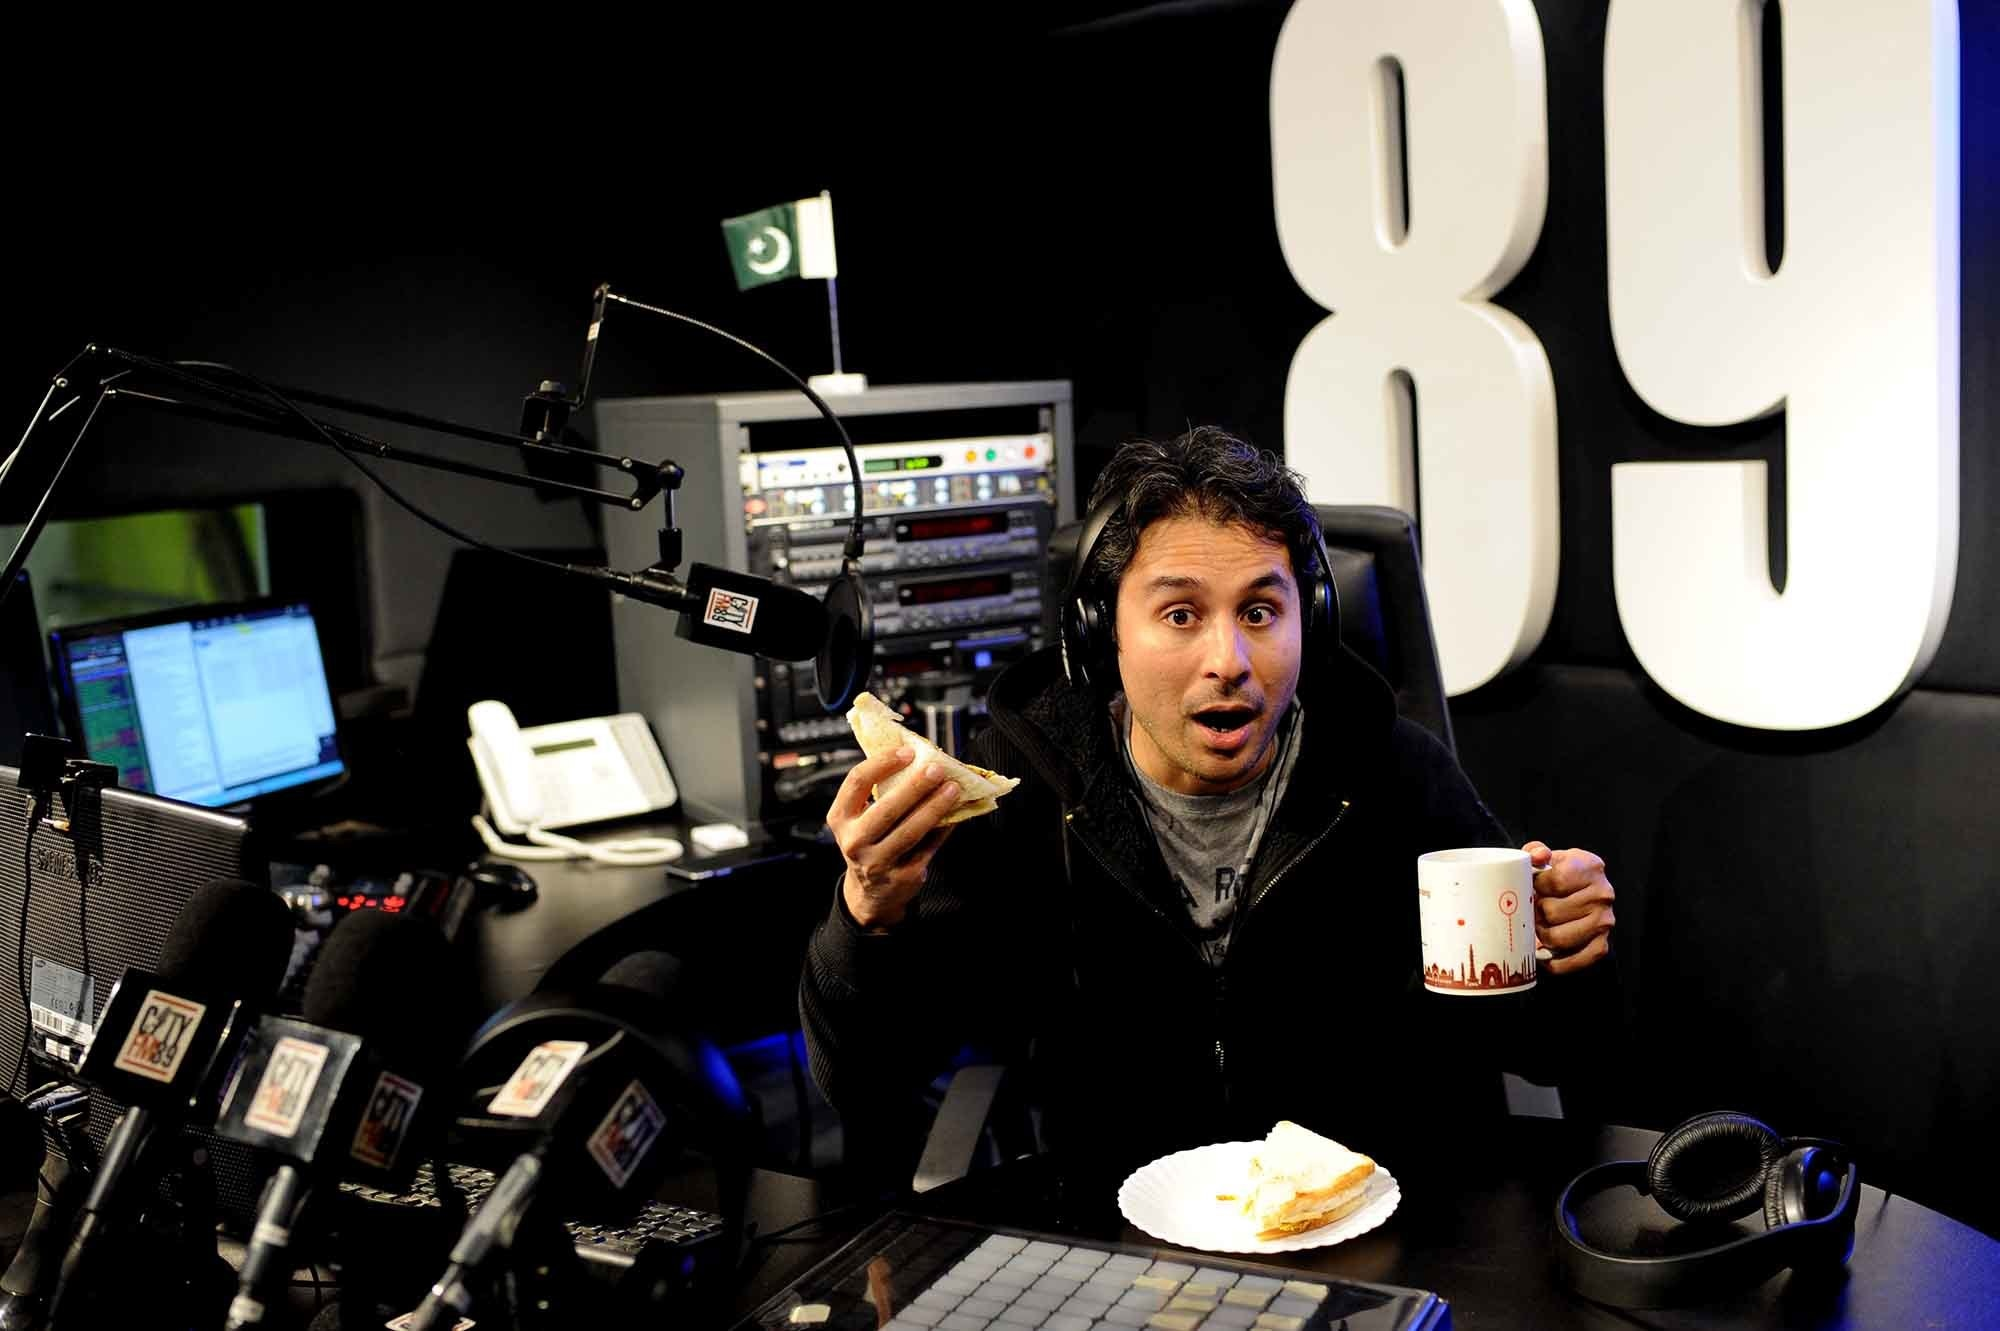 Internationally acclaimed actor, writer and stand-up comedian Saad Haroon enjoys his breakfast during a break while hosting the Breakfast Show on CityFM89. Haroon was one of the first comedians in Pakistan to perform in English. He co-founded Blackfish, Pakistan's first English-language comedy troupe in the early 2000s. Later, he began performing as a solo stand-up comedian. Cheeky, irreverent and witty, Haroon brings his own brand of enthusiasm to the Breakfast Show which was previously hosted by the much loved Khalid Malik. CityFM89 is part of The Dawn Media Group and started broadcasting in 2004. It rapidly acquired a sizeable audience due to its innovative and eclectic programming. (photo: Arif Mahmood/ Dawn White Star)